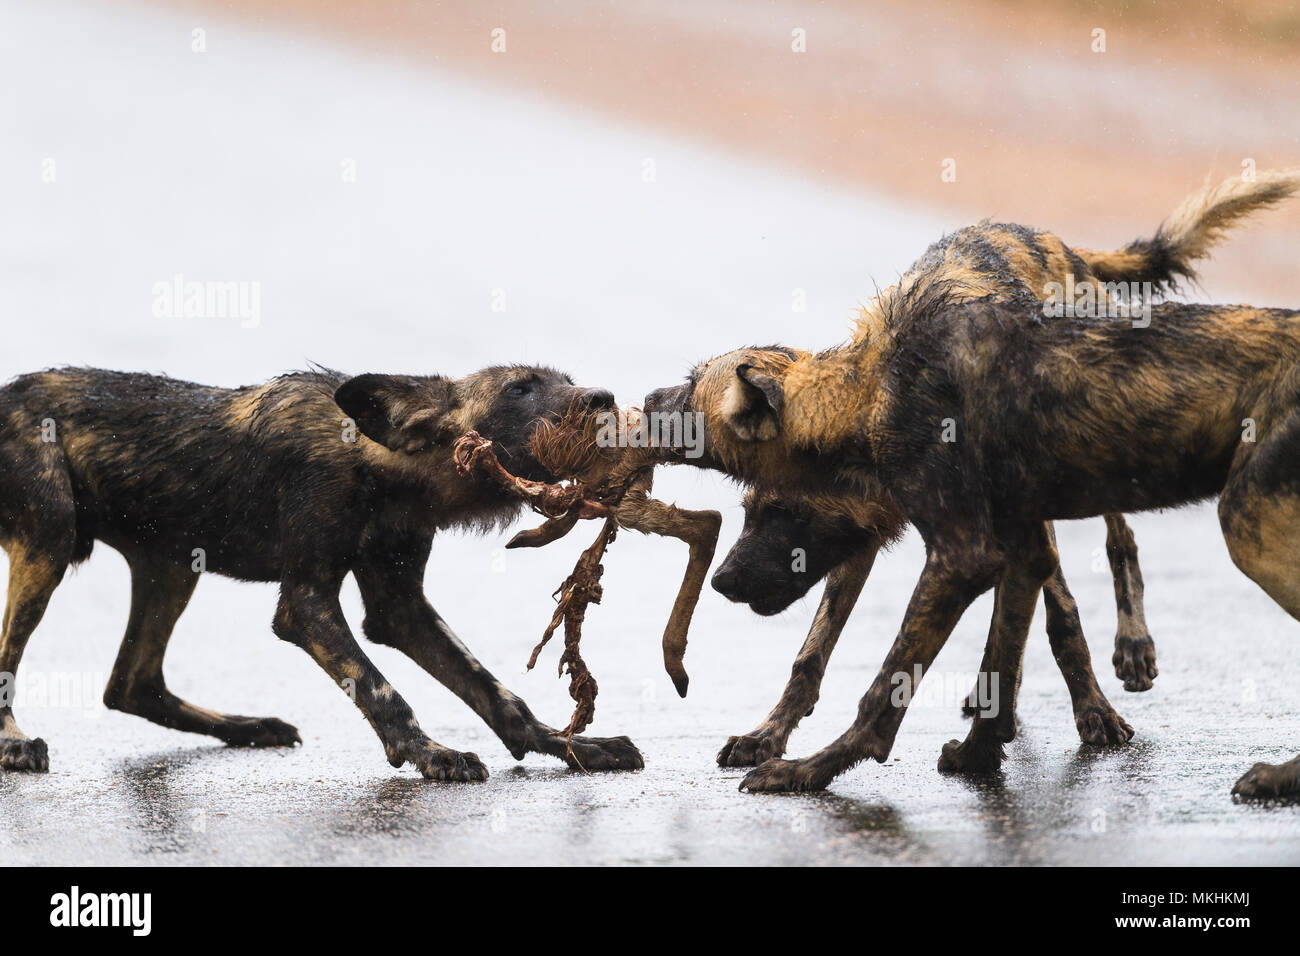 African Wild Dog sharing a prey (Lycaon pictus), South Africa, Kruger national park - Stock Image